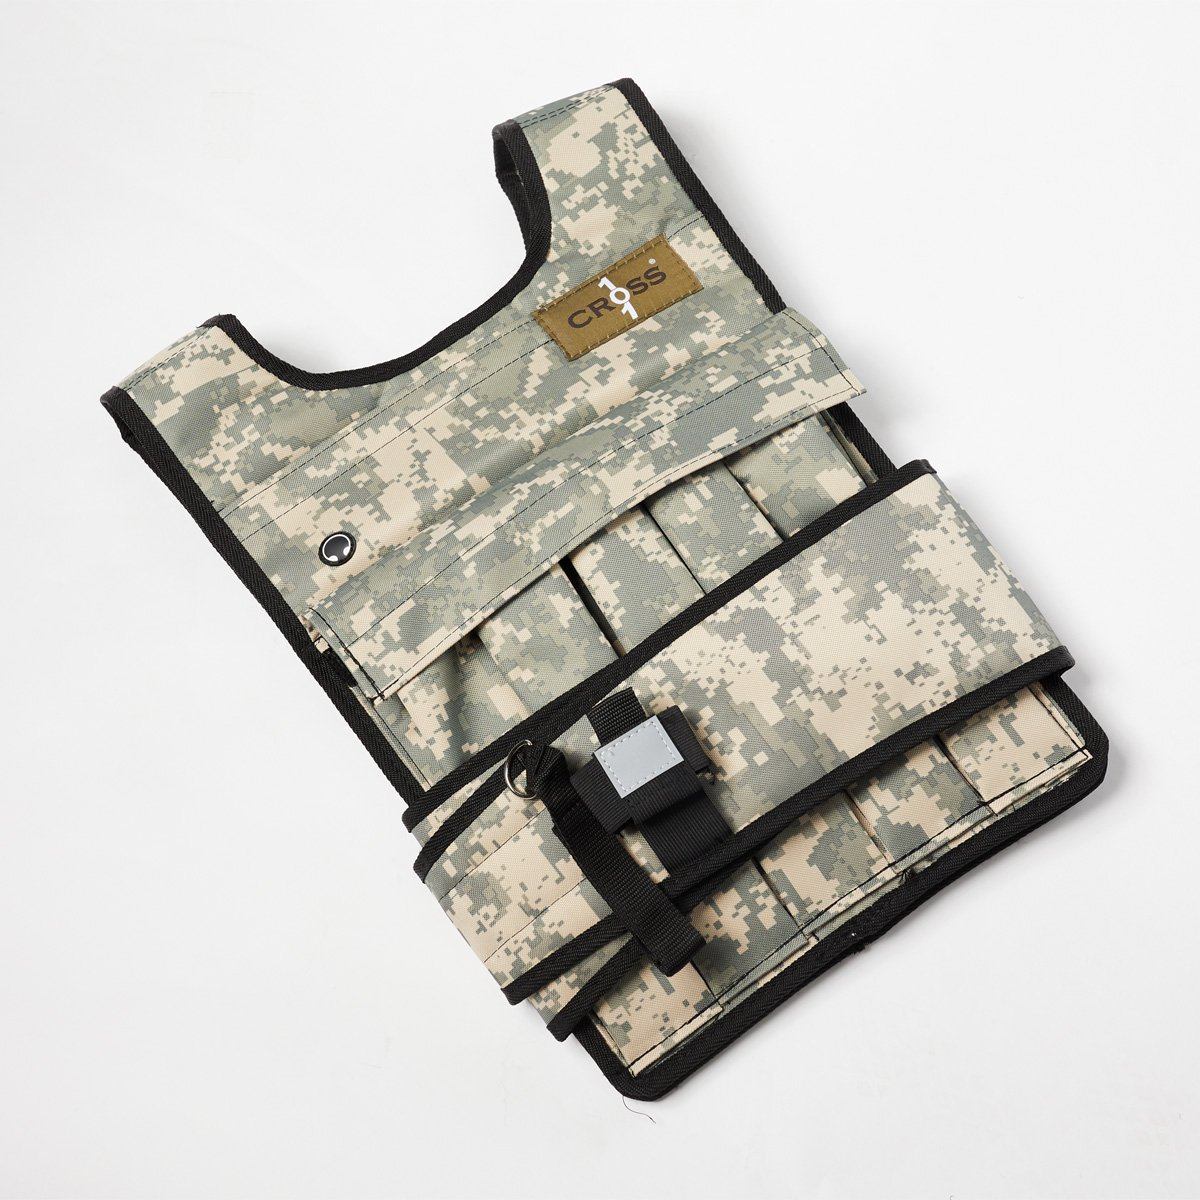 CROSS101 Camouflage Adjustable Weighted Vest with Shoulder Pads (50)